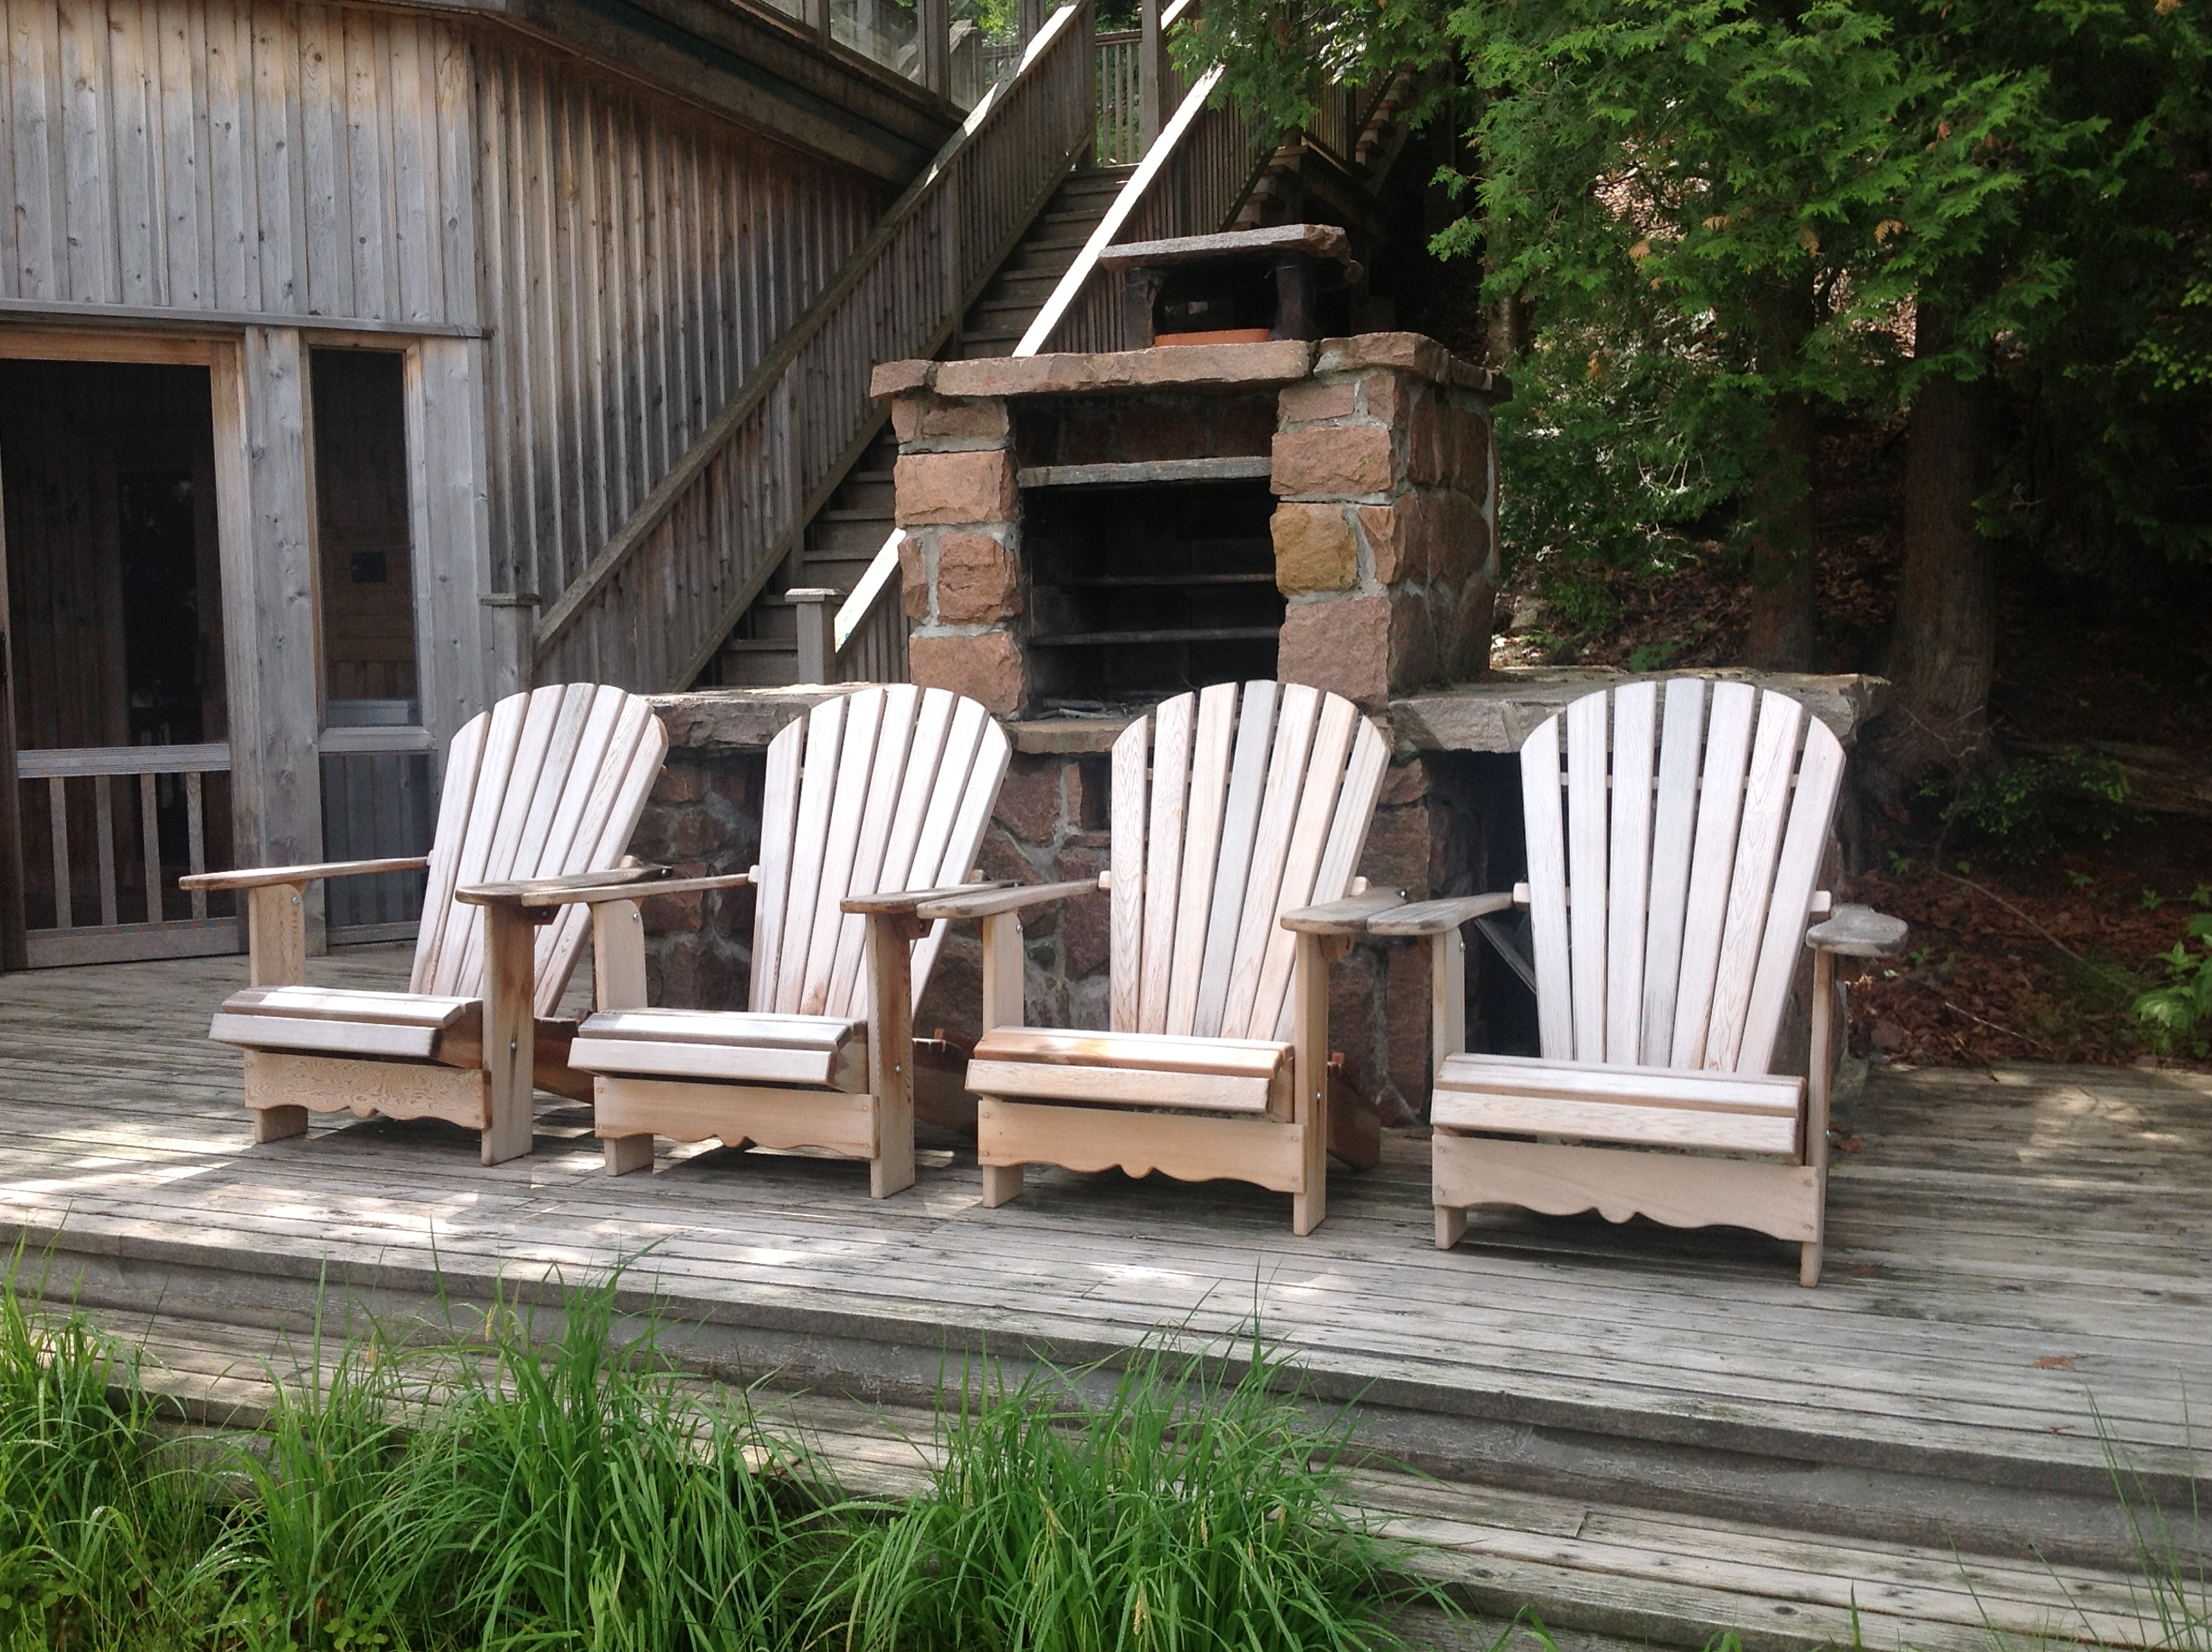 Muskoka chairs on a dock